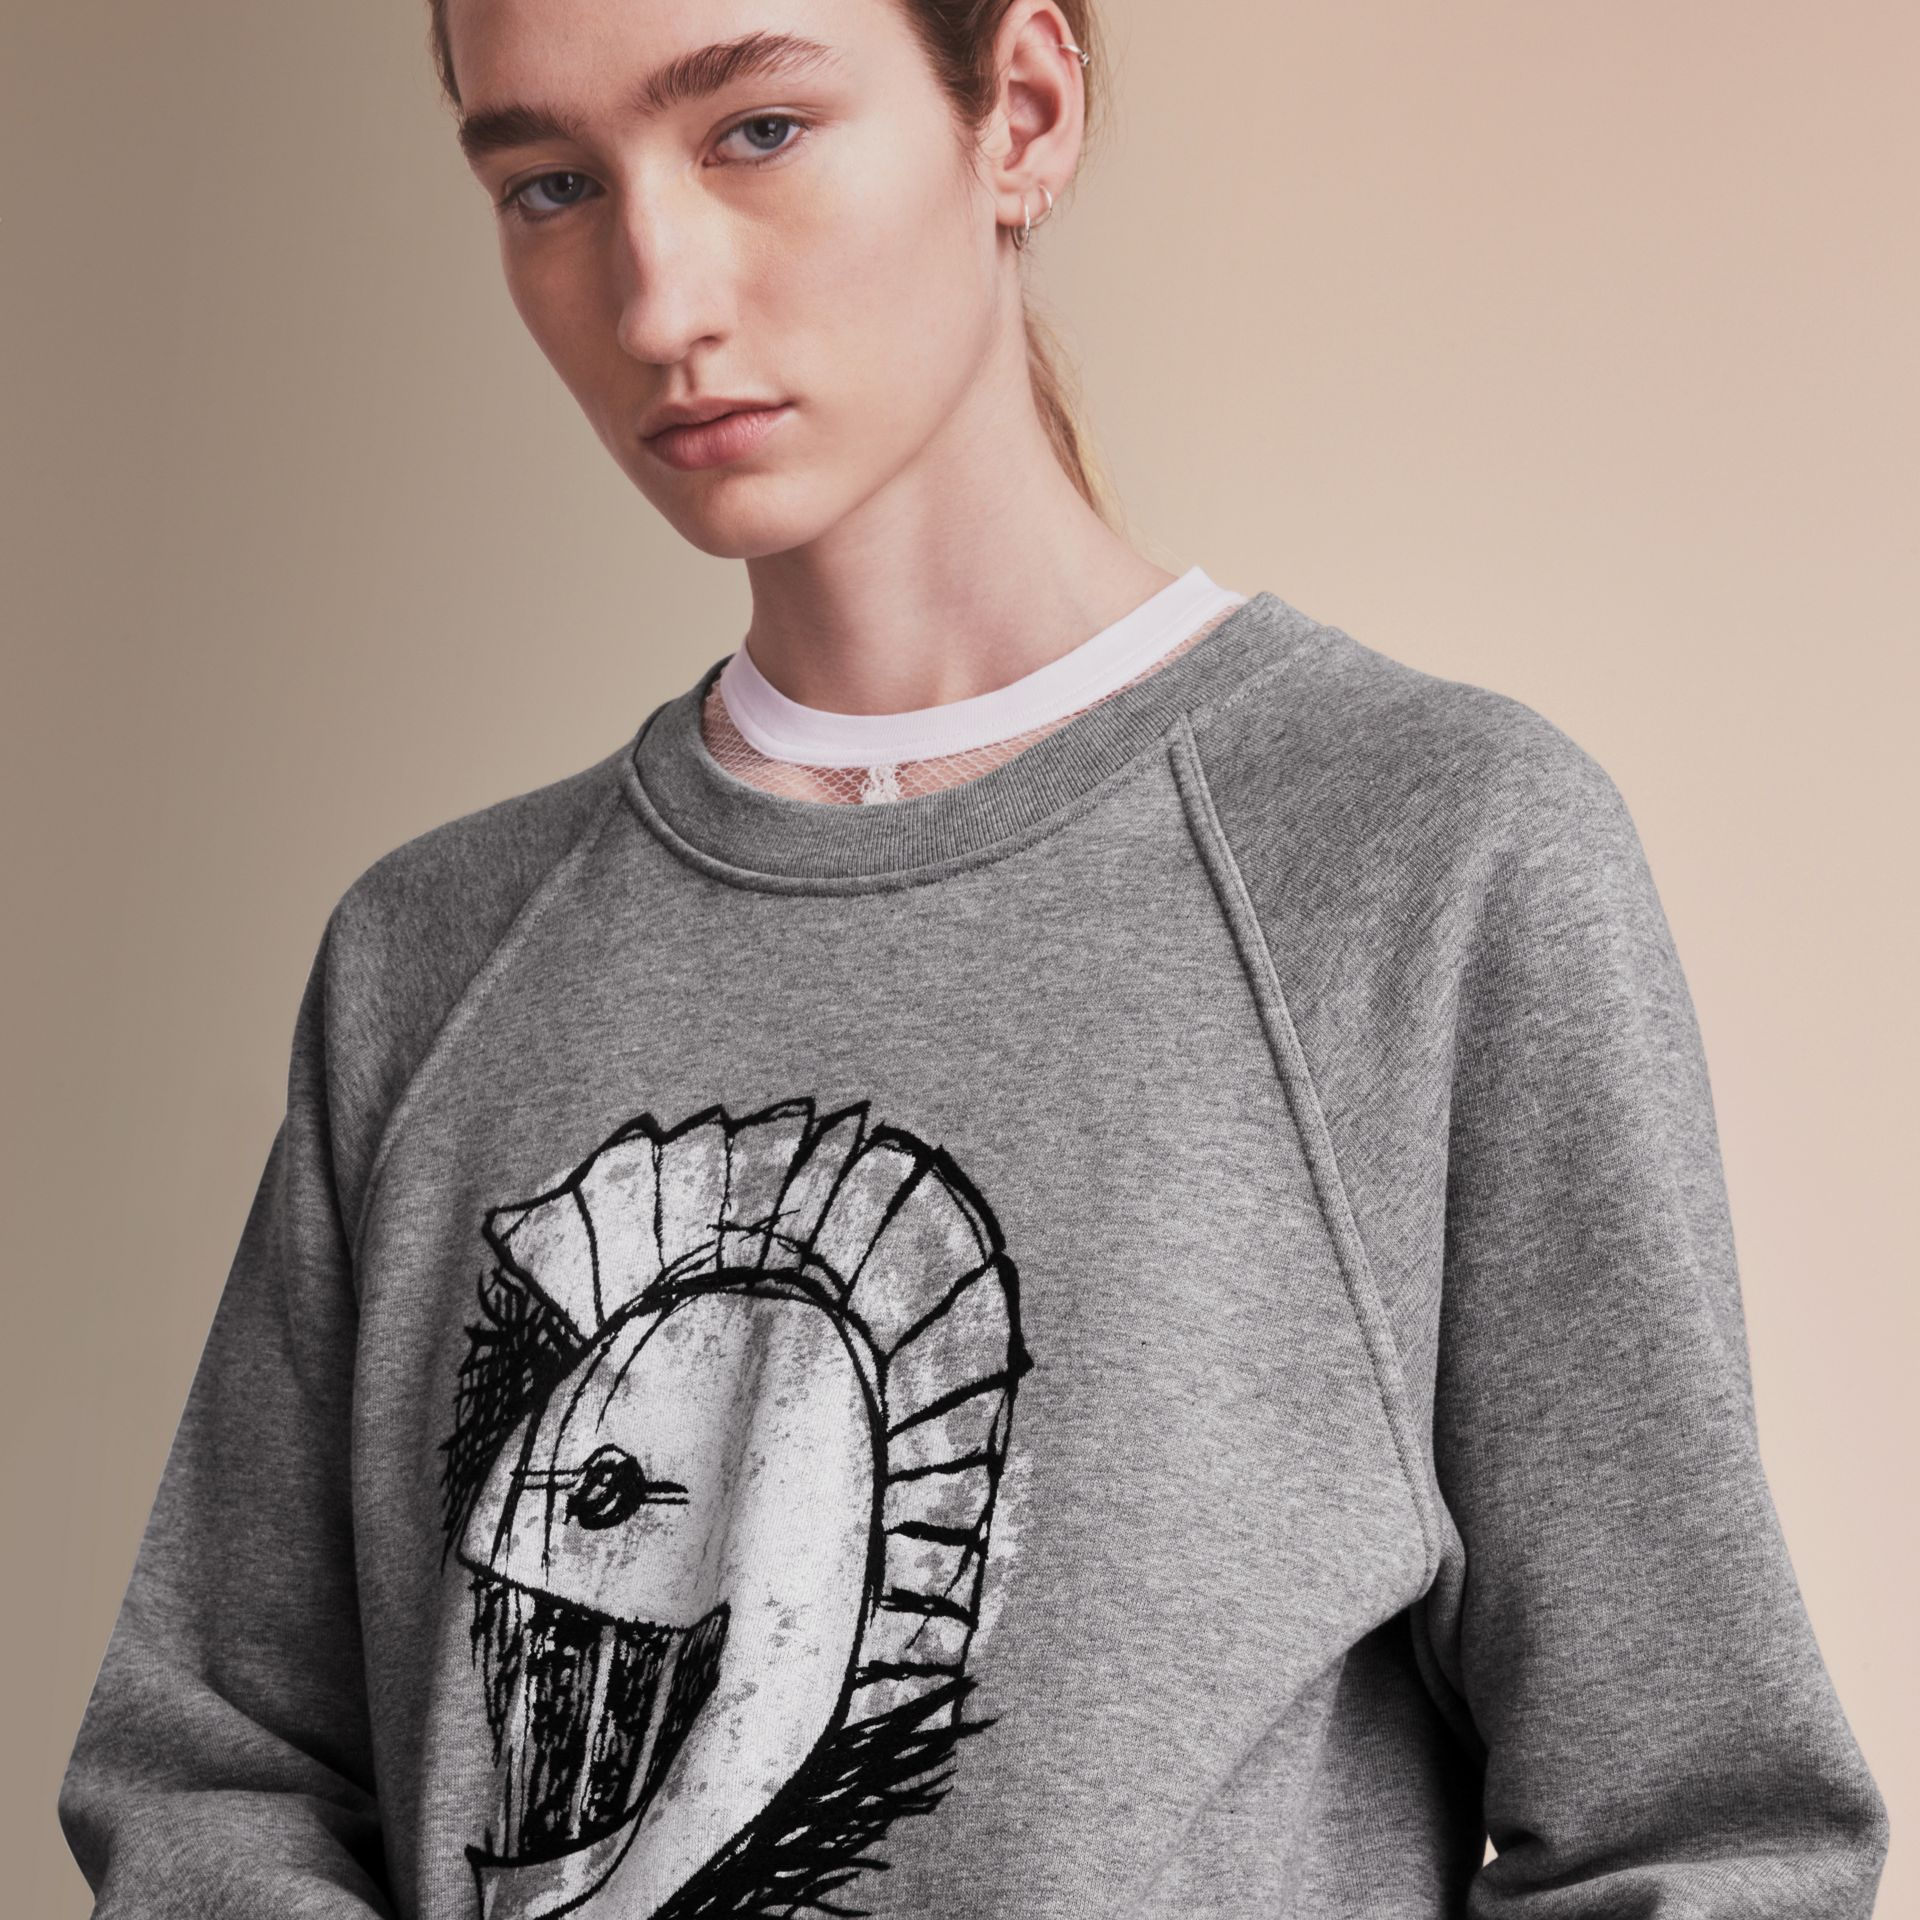 Unisex Pallas Helmet Motif Sweatshirt in Grey Melange - Women | Burberry - gallery image 6